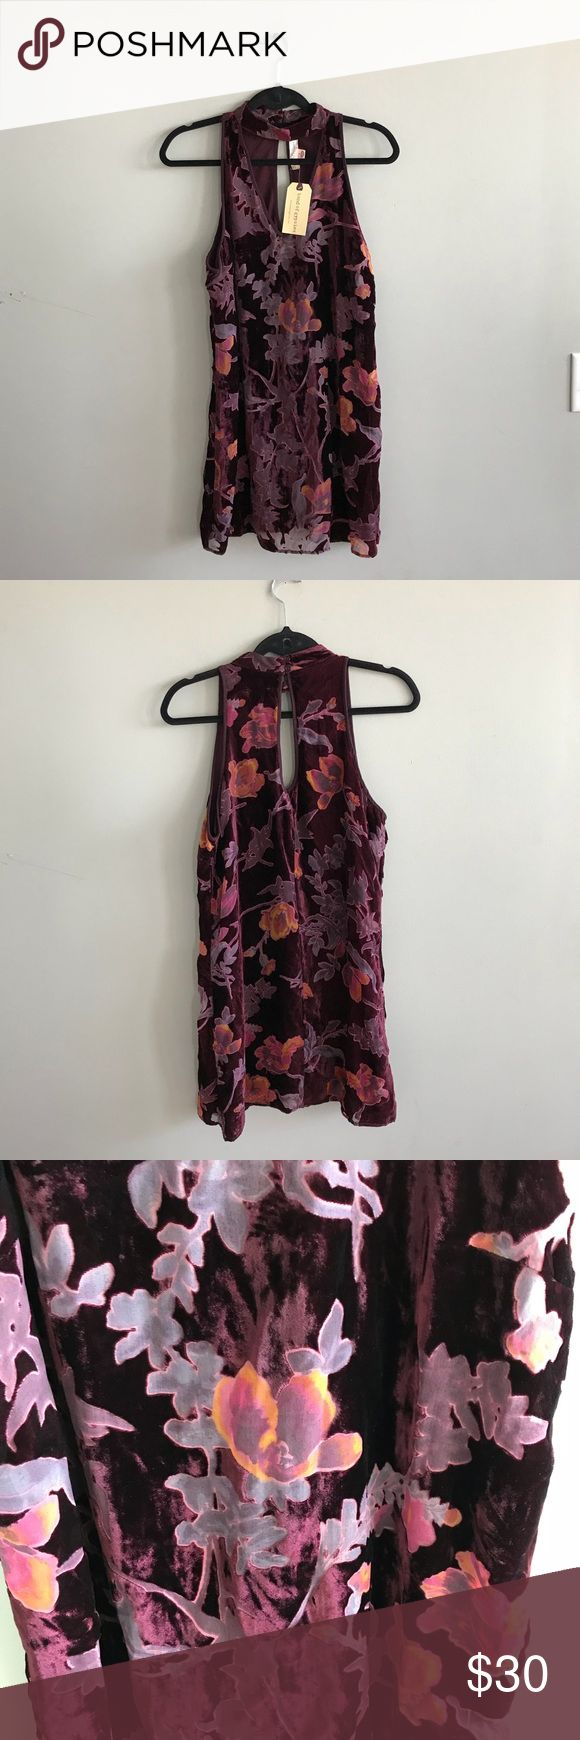 "Band Of Gypsies NWT Burgundy Velvet Burnout Dress Has a small rip with fraying, shown in photos, but if your handy with a needle it would be a easy fix. Also has some loose threads on the back. Choker dress. Floral. Lined.  34"" length  19"" pit to pit  No trades  Bundle all of your likes for a private discount Band of Gypsies Dresses"